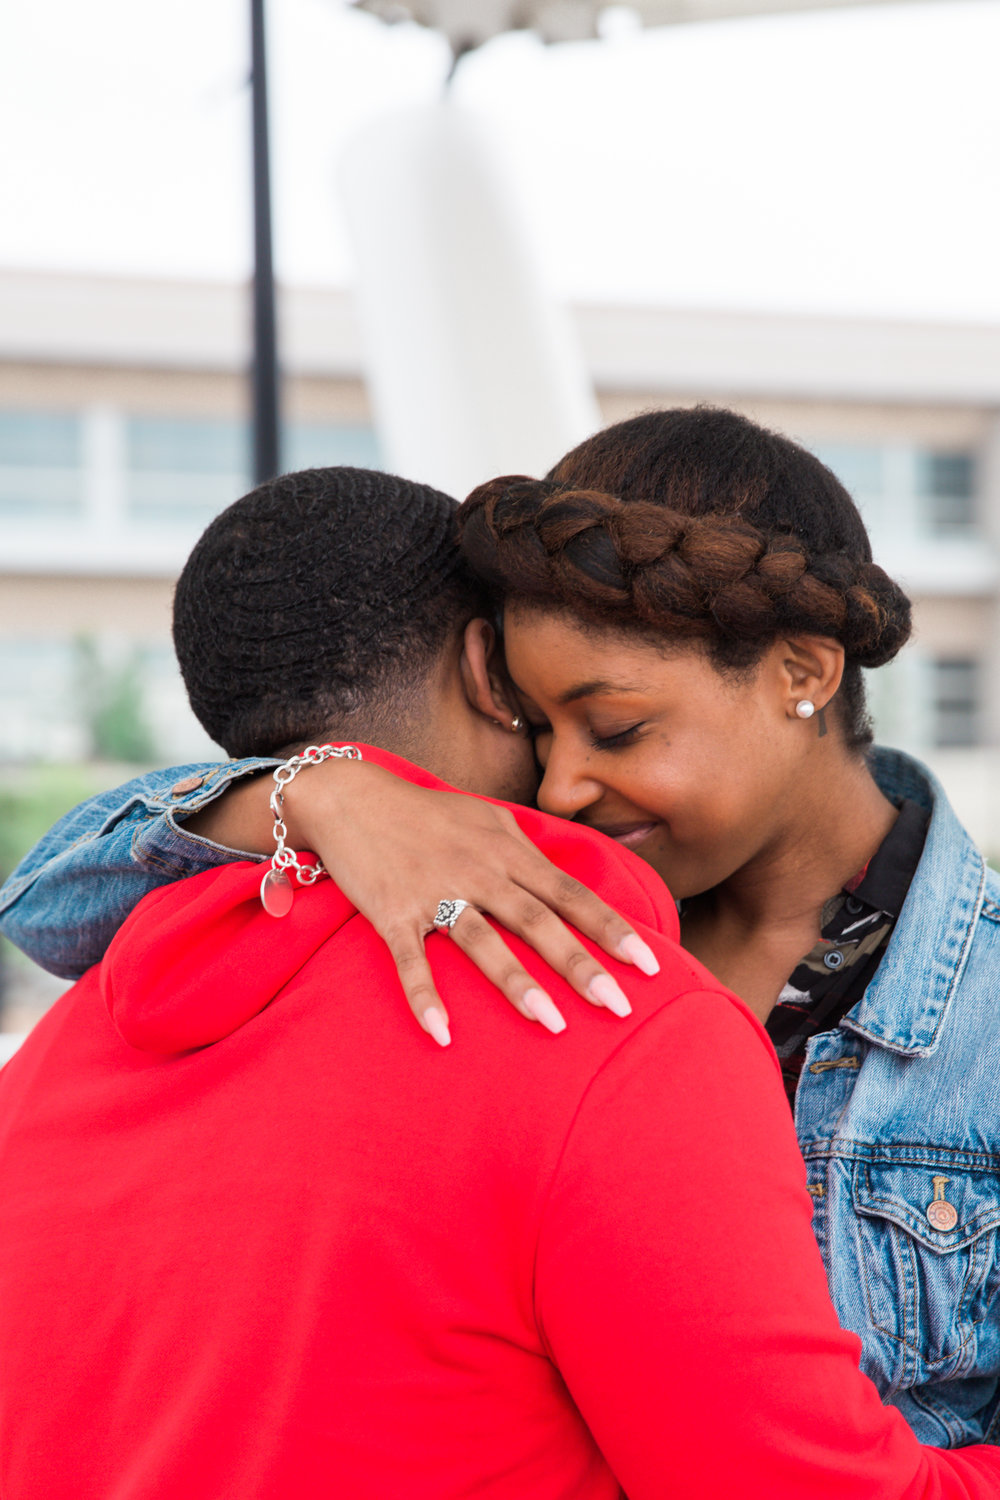 Proposal Photography at the National Harbor Gaylord by Megapixels Media-13.jpg